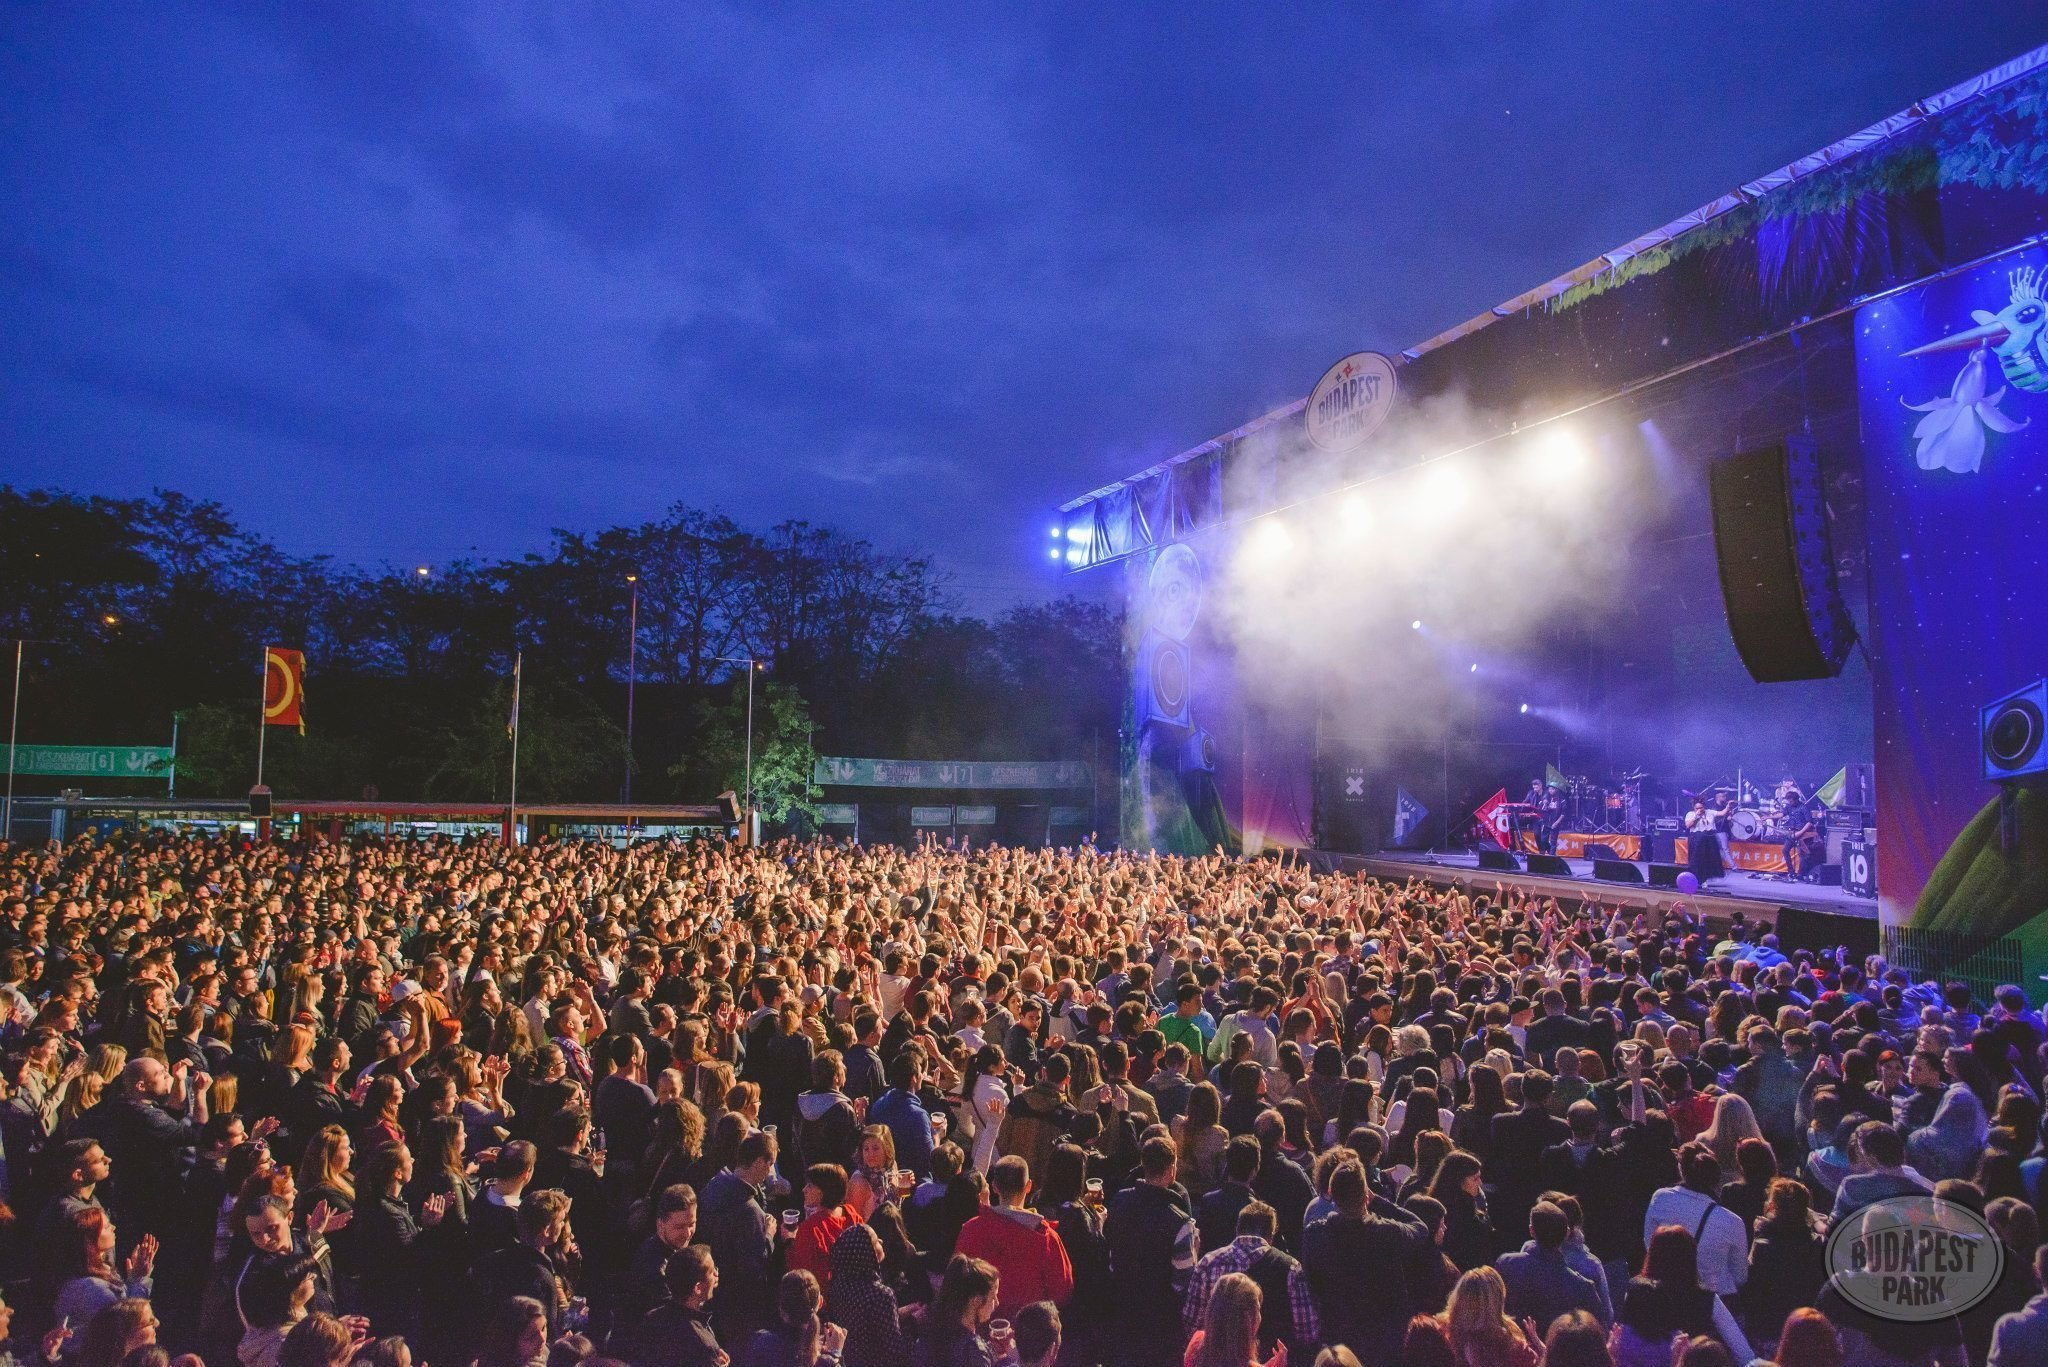 The best concerts at Budapest Park